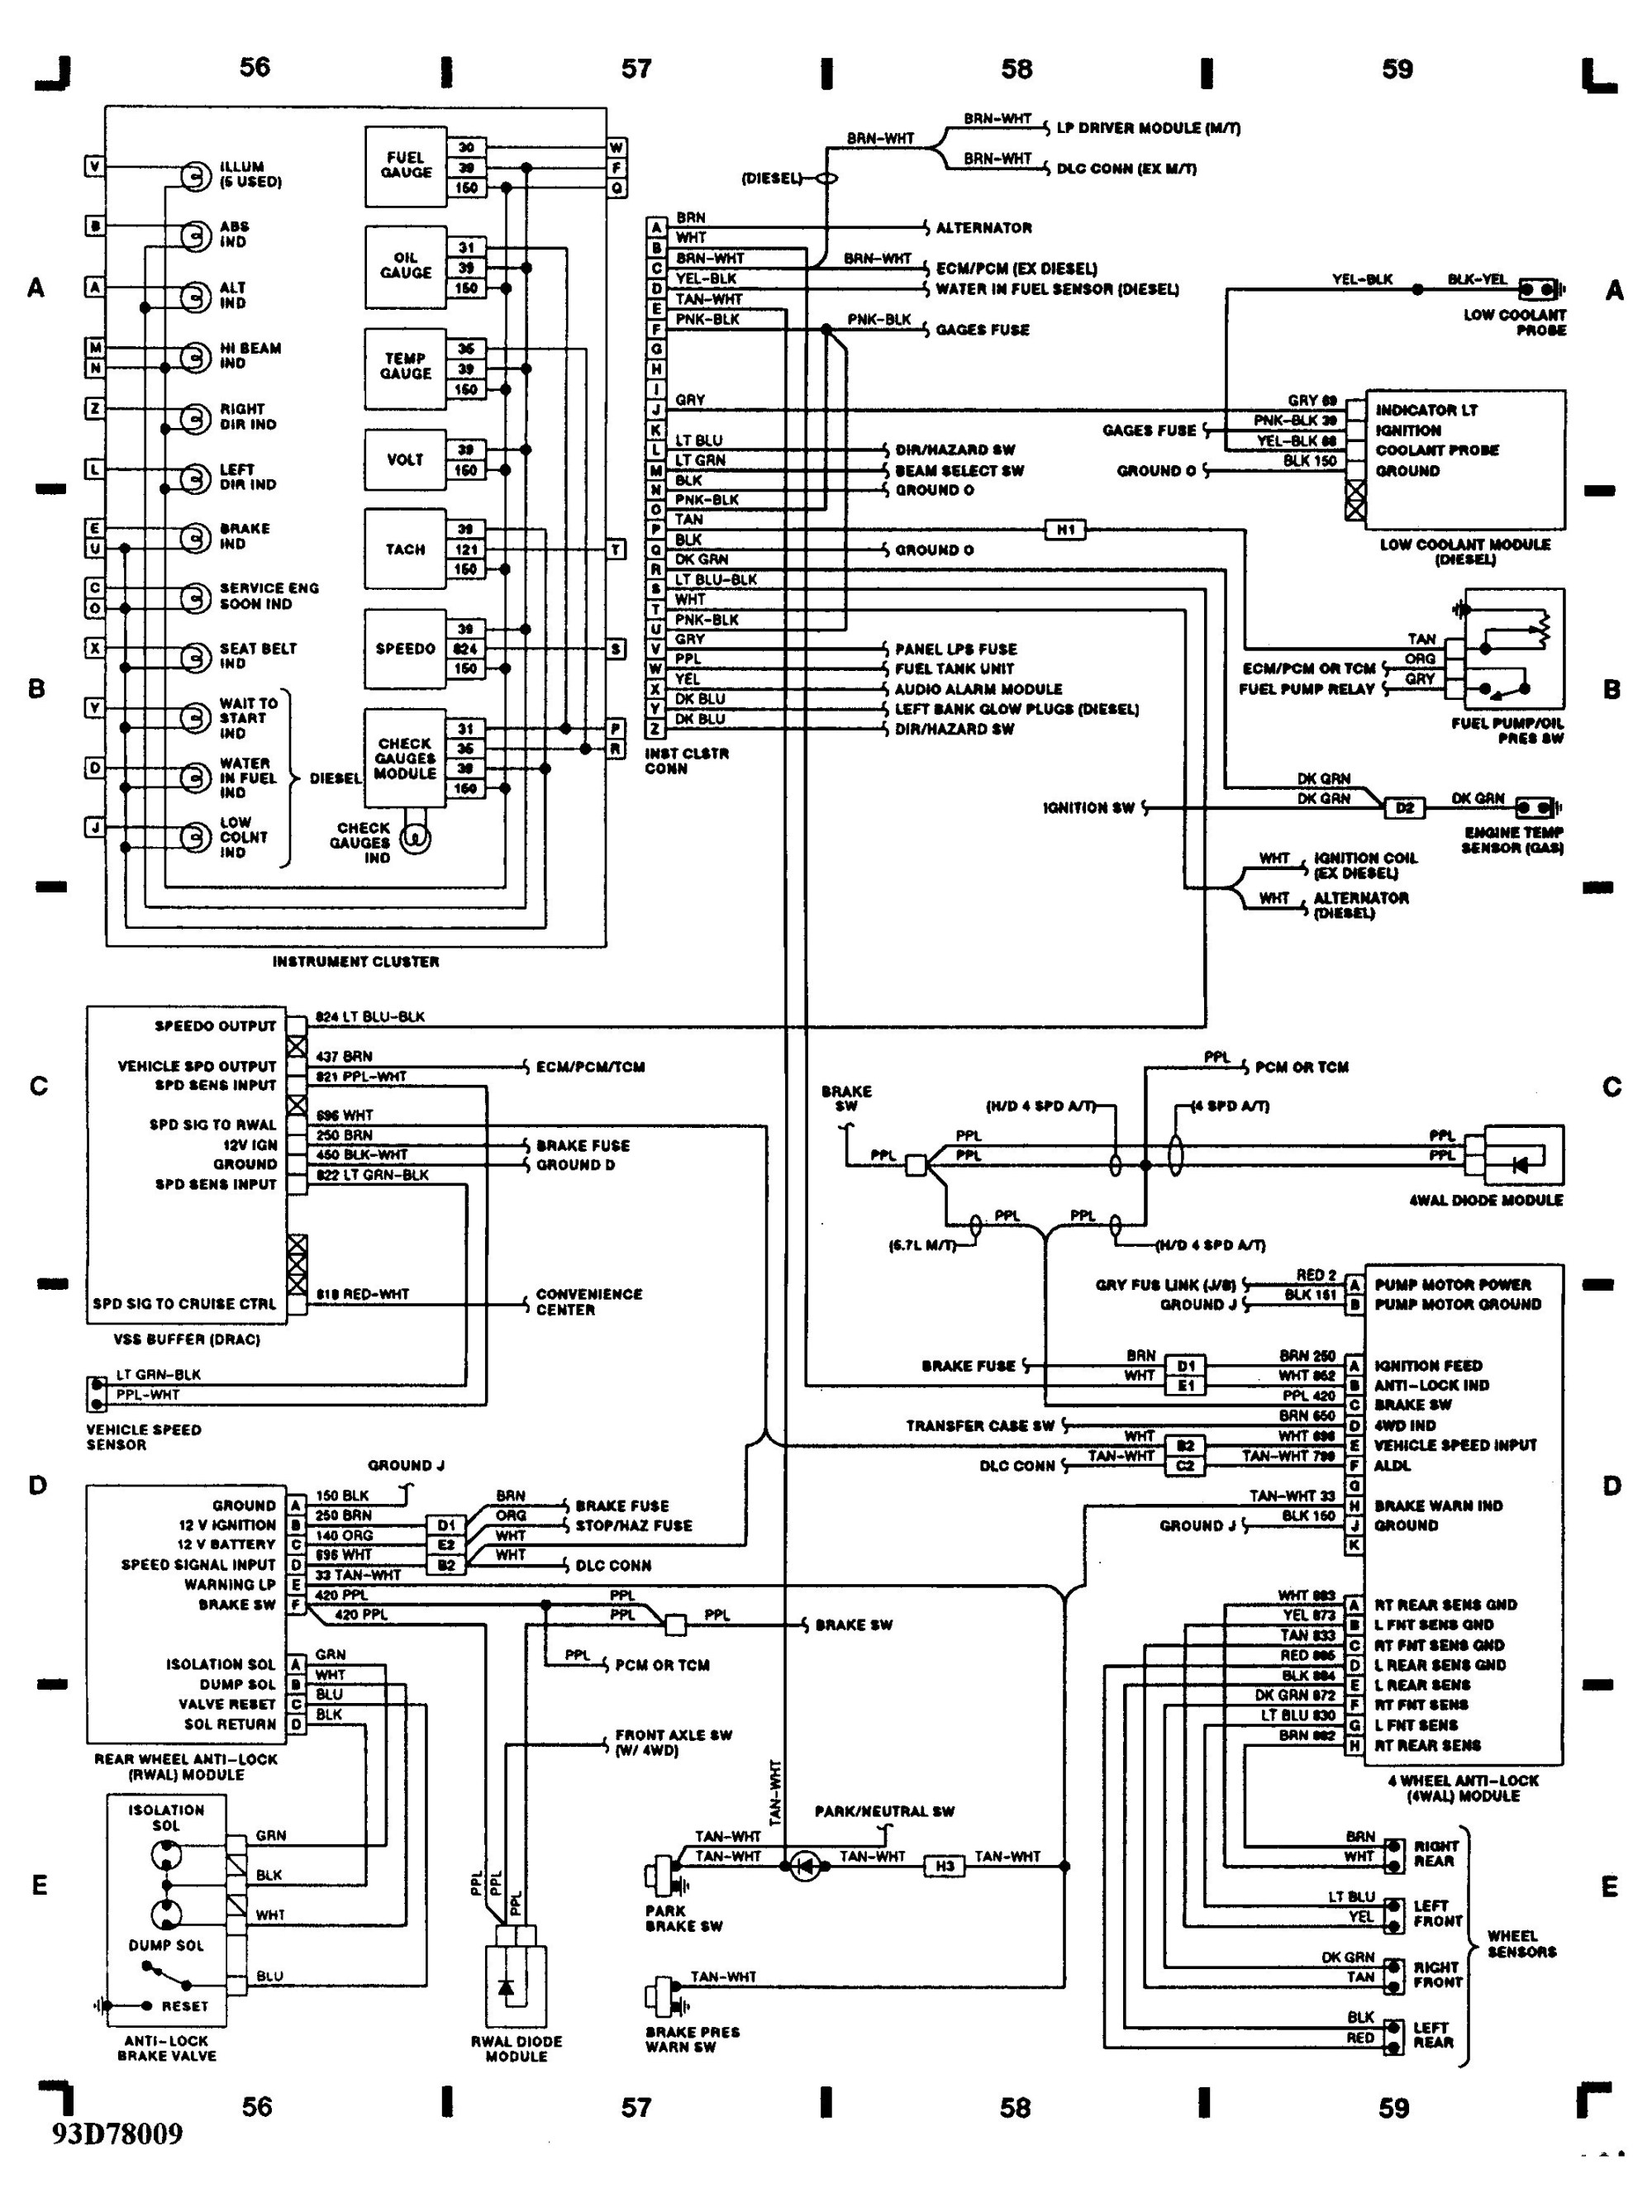 hight resolution of 1995 lumina 3 1 chevy engine diagram wiring diagram view 1995 lumina 3 1 chevy engine diagram